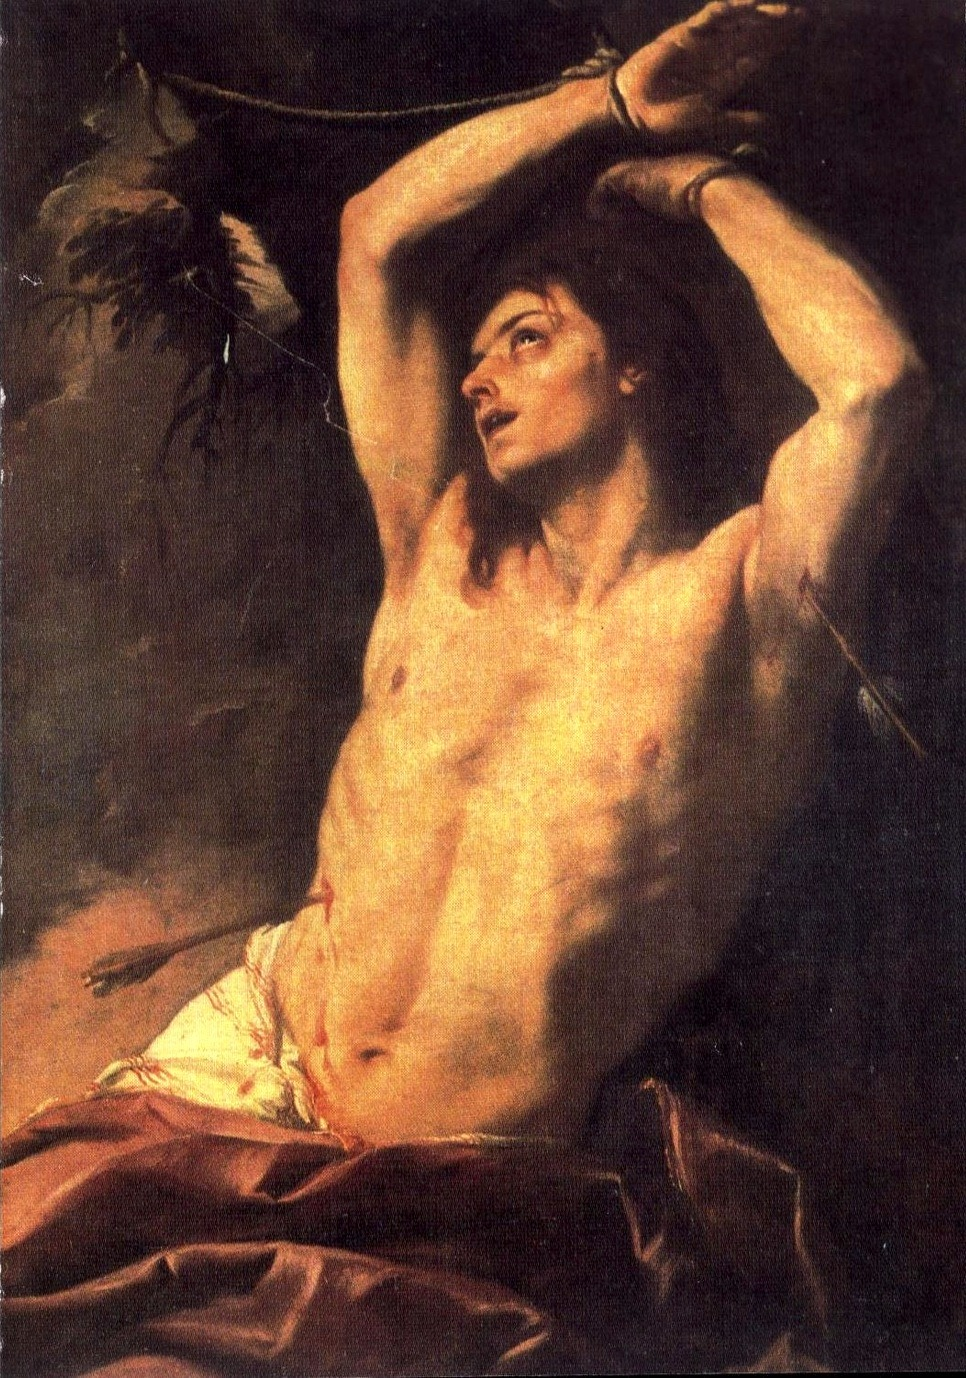 Giovanni Battista Beinaschi, Saint Sebastian, 17th century